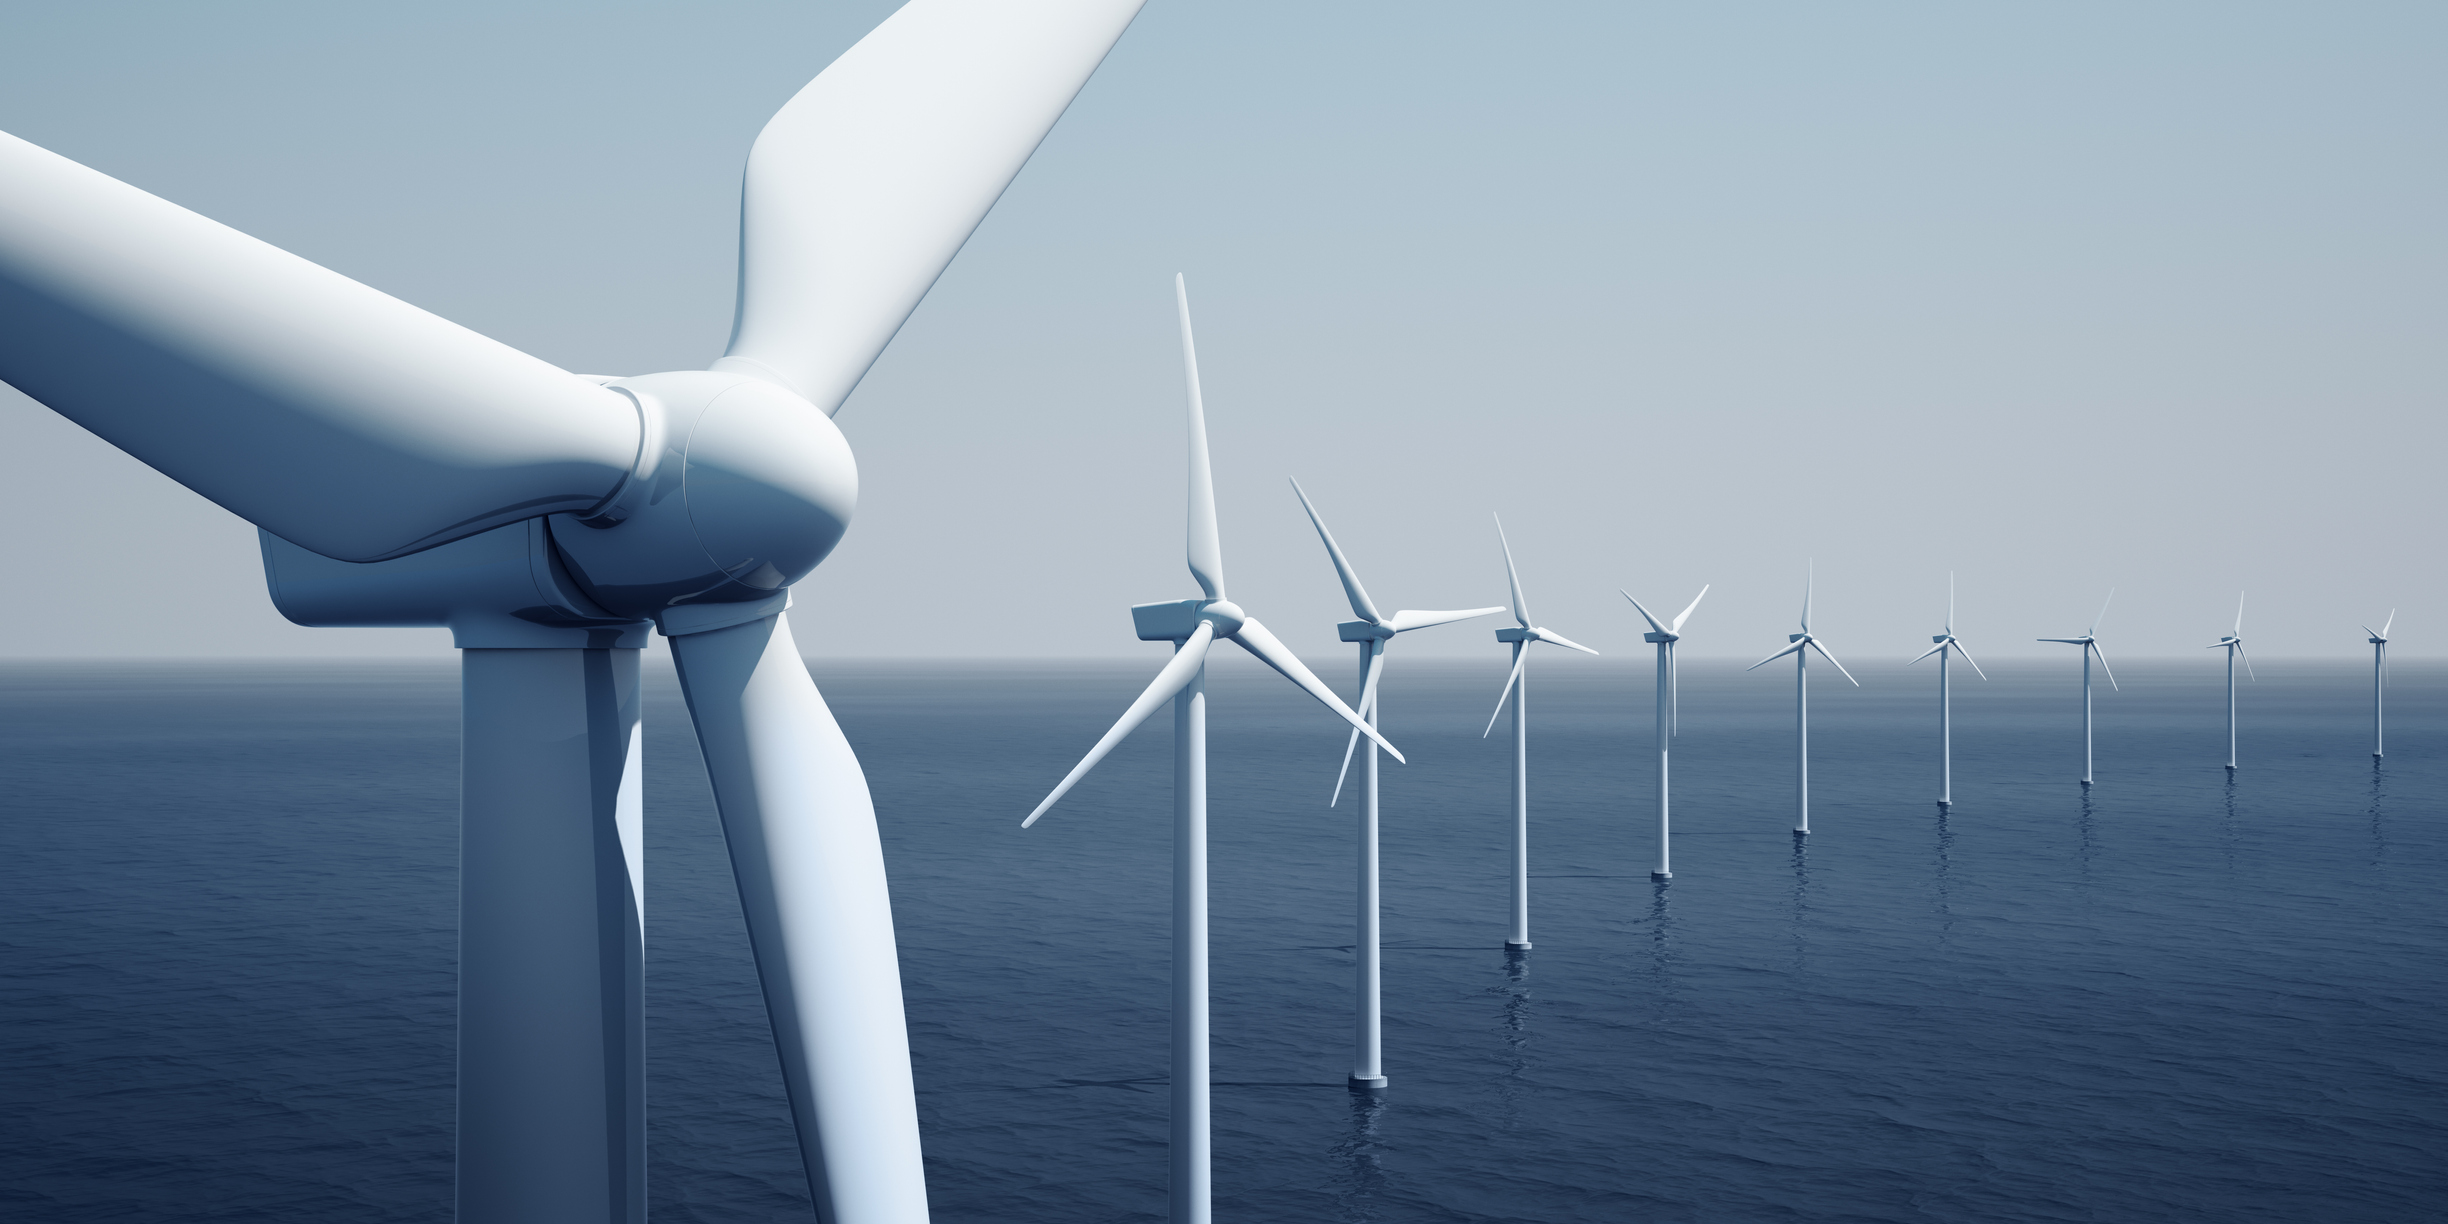 Accucode and RCAM Technologies Announce 3D Concrete Printing Plans for Offshore Wind Turbines